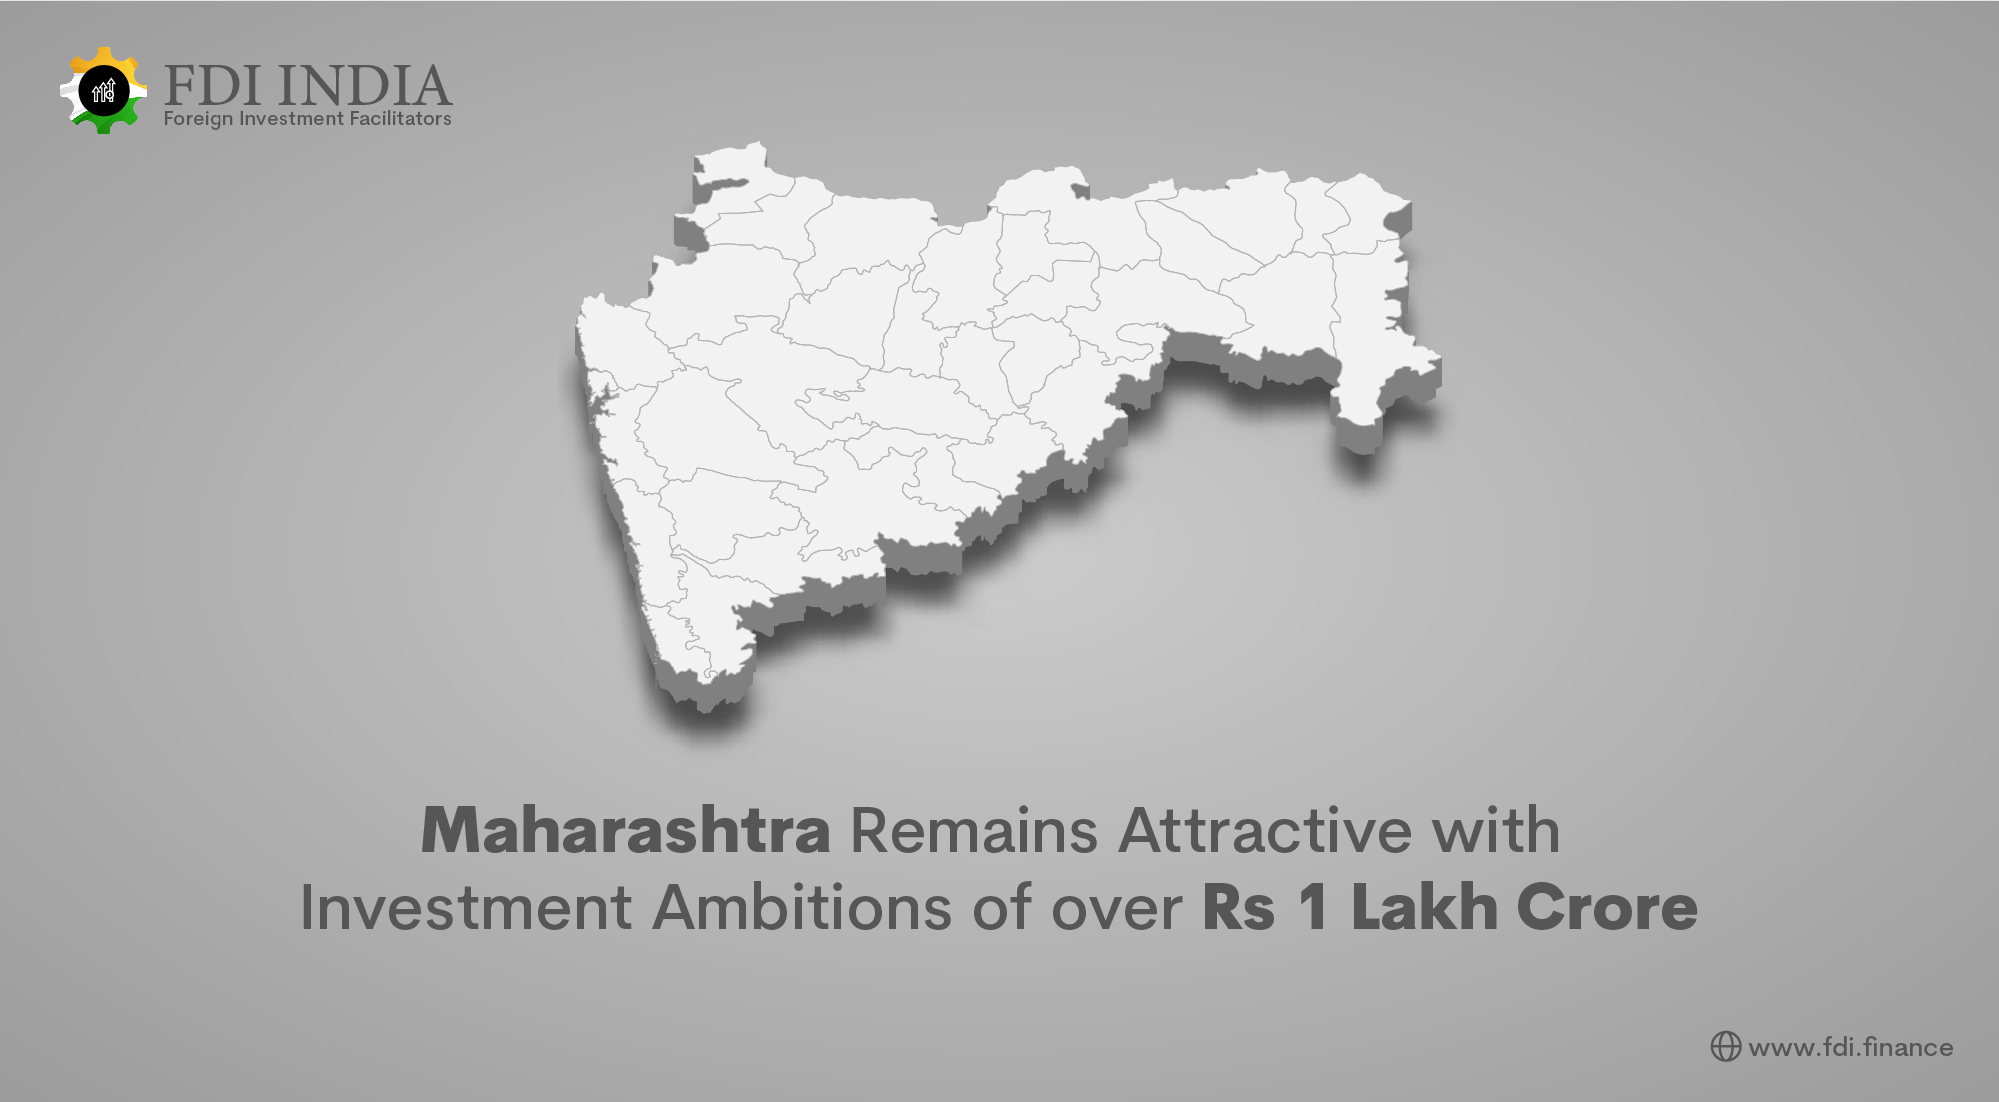 Maharashtra Remains Attractive with Investment Ambitions of over Rs 1 Lakh Crore